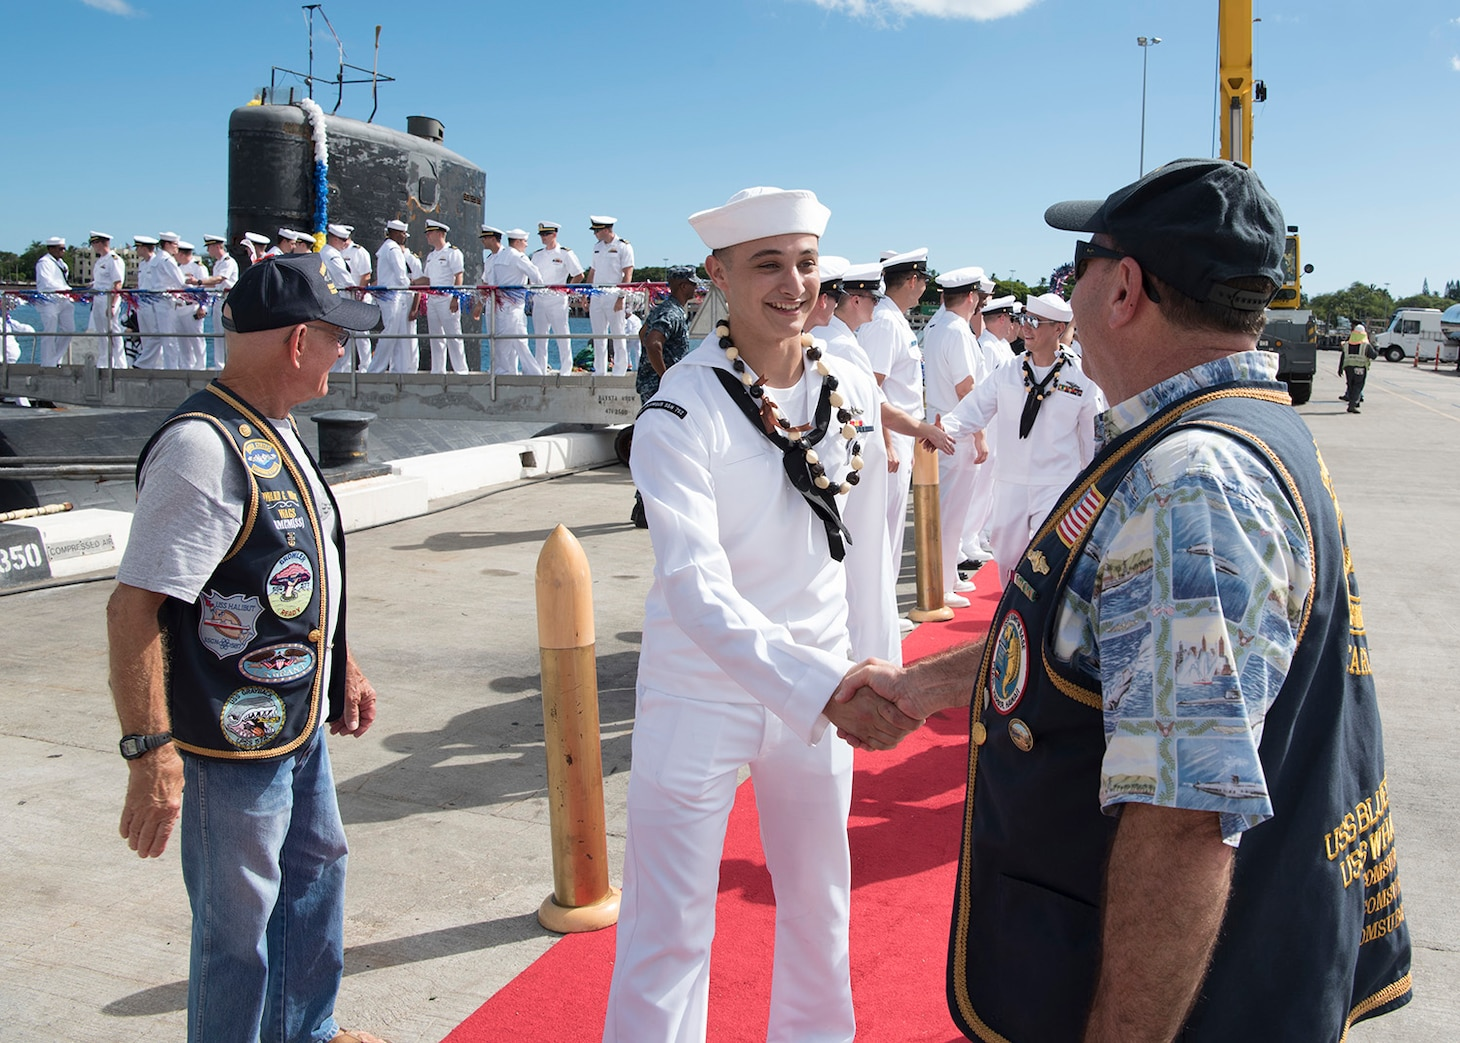 Retired submariners from the U.S. Submarine Veterans Bowfin Base chapter welcome home Sailors from the Los Angeles-class attack submarine USS Columbus (SSN 762). .(U.S. Navy Photo by Mass Communication Specialist 2nd Class Shaun Griffin/Released)